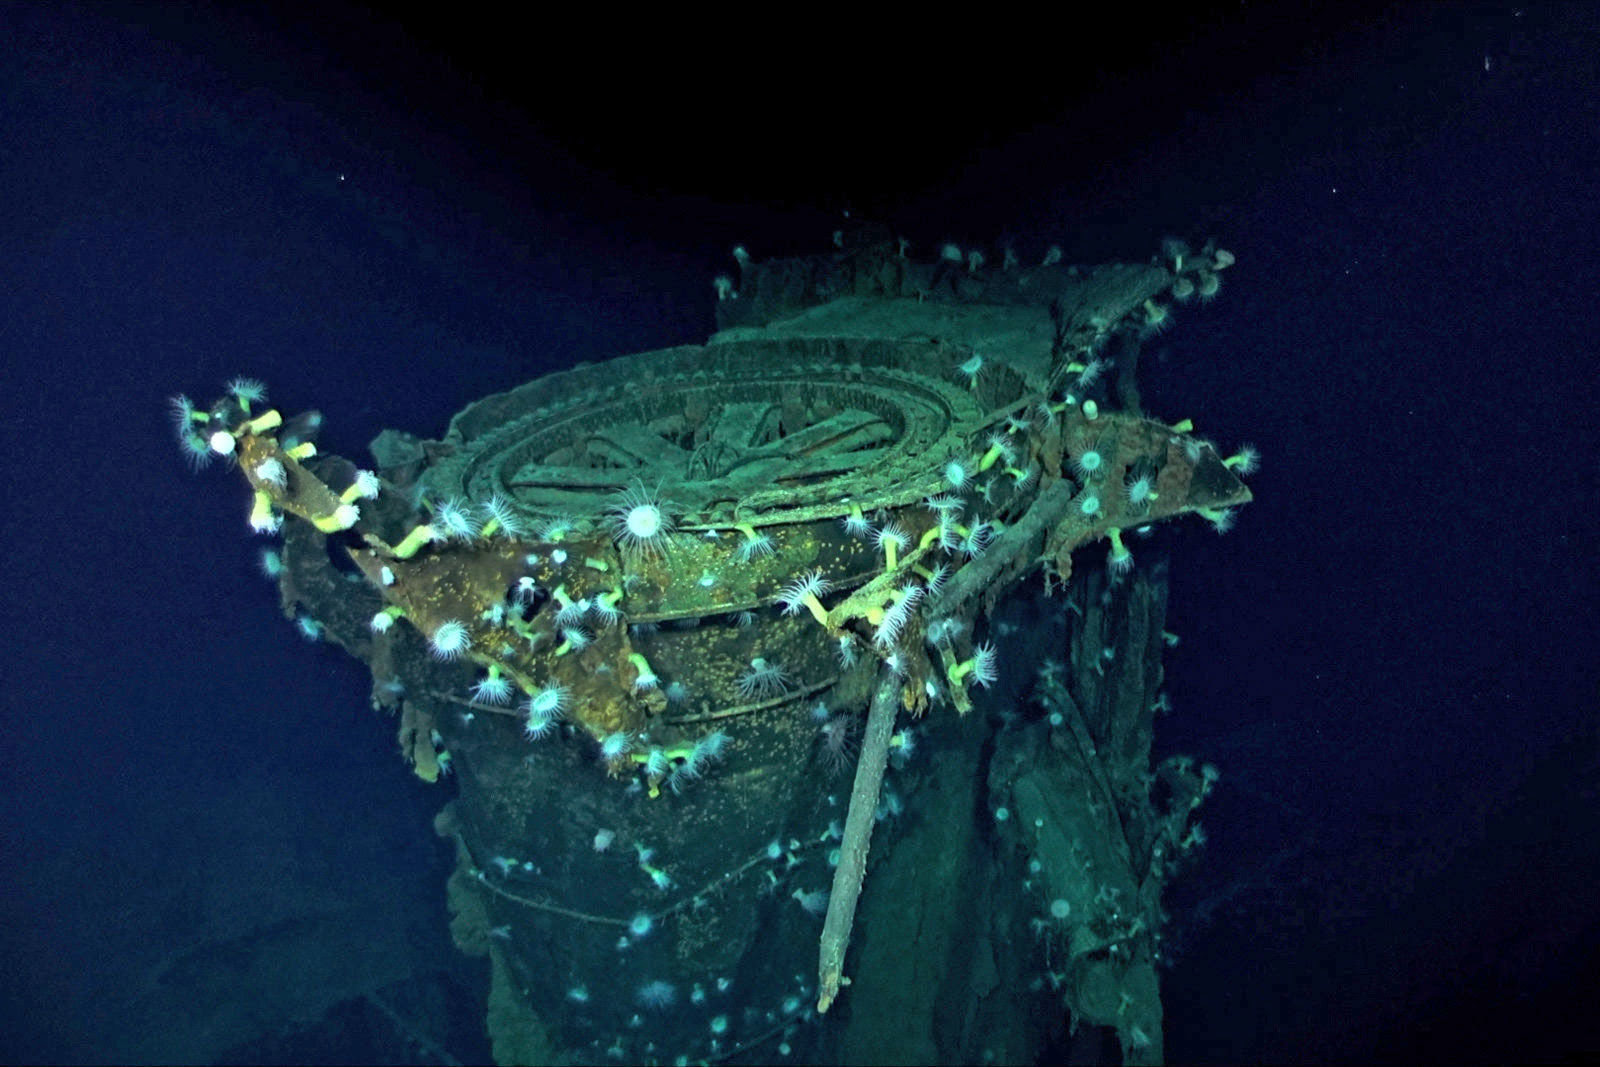 https://legionmagazine.com/en/2019/11/paul-g-allens-legacy-uncovering-history-from-the-deep-ocean/